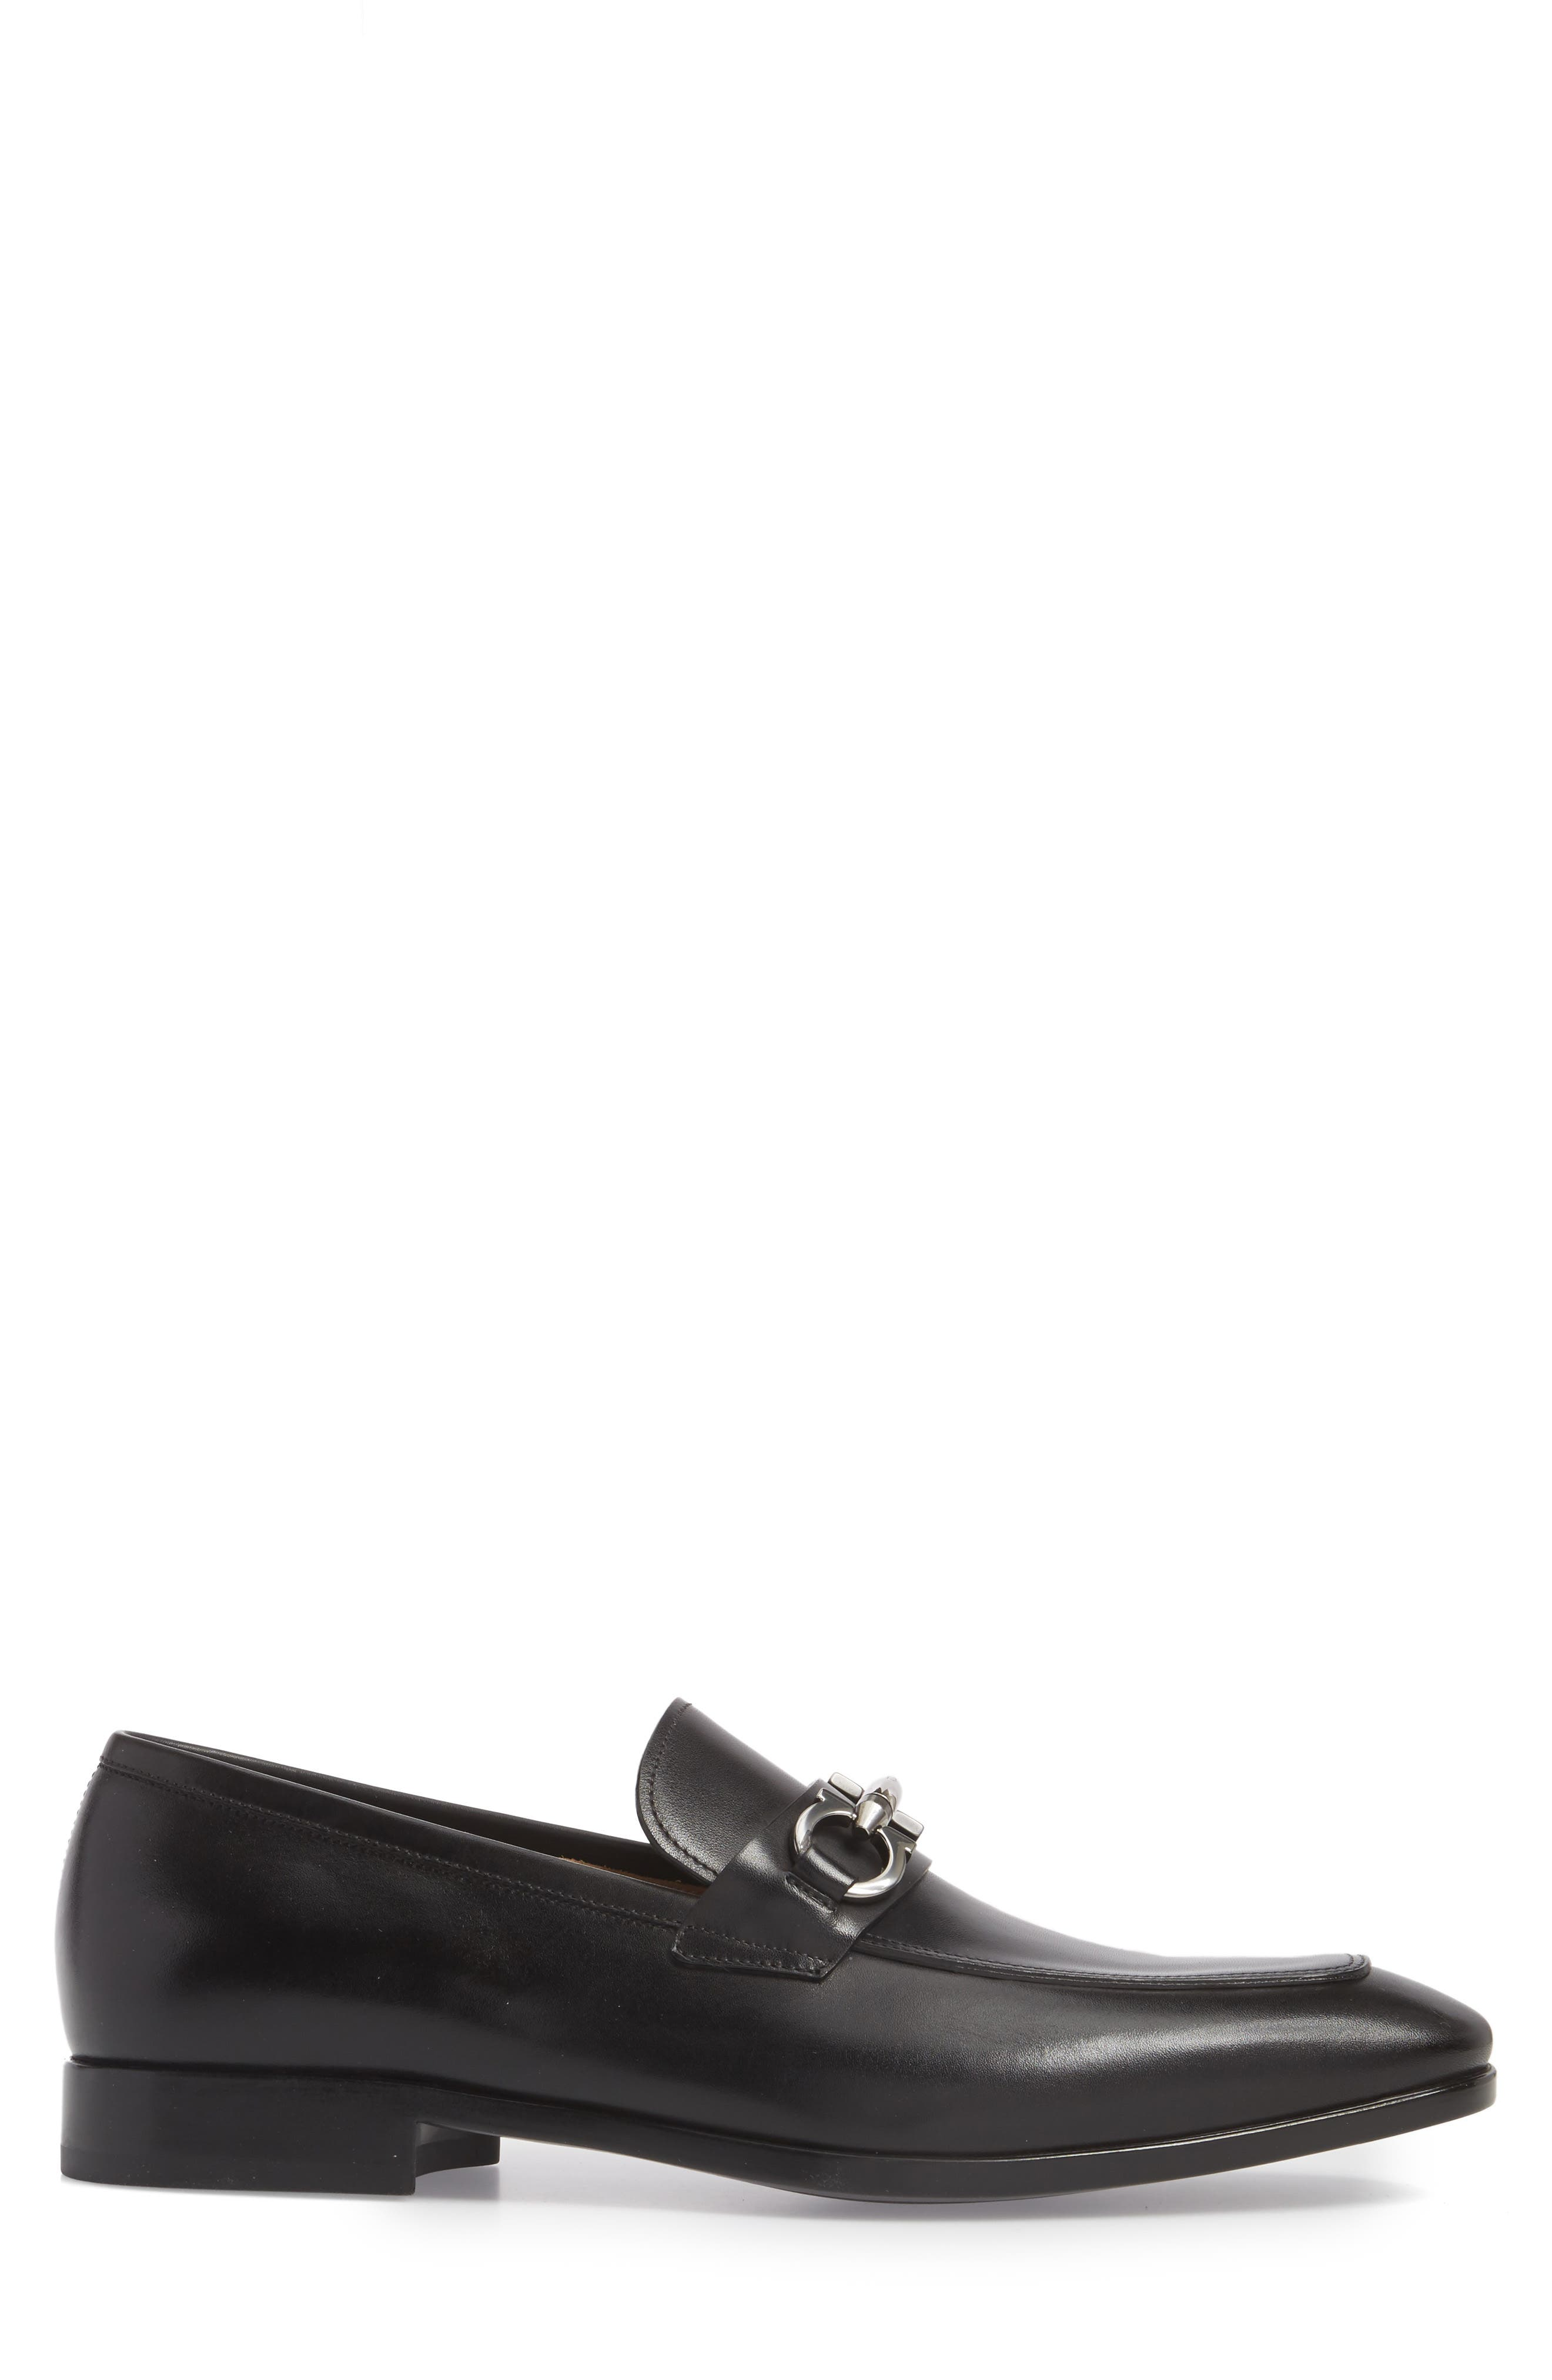 SALVATORE FERRAGAMO, Benford Rounded Bit Loafer, Alternate thumbnail 3, color, NERO LEATHER